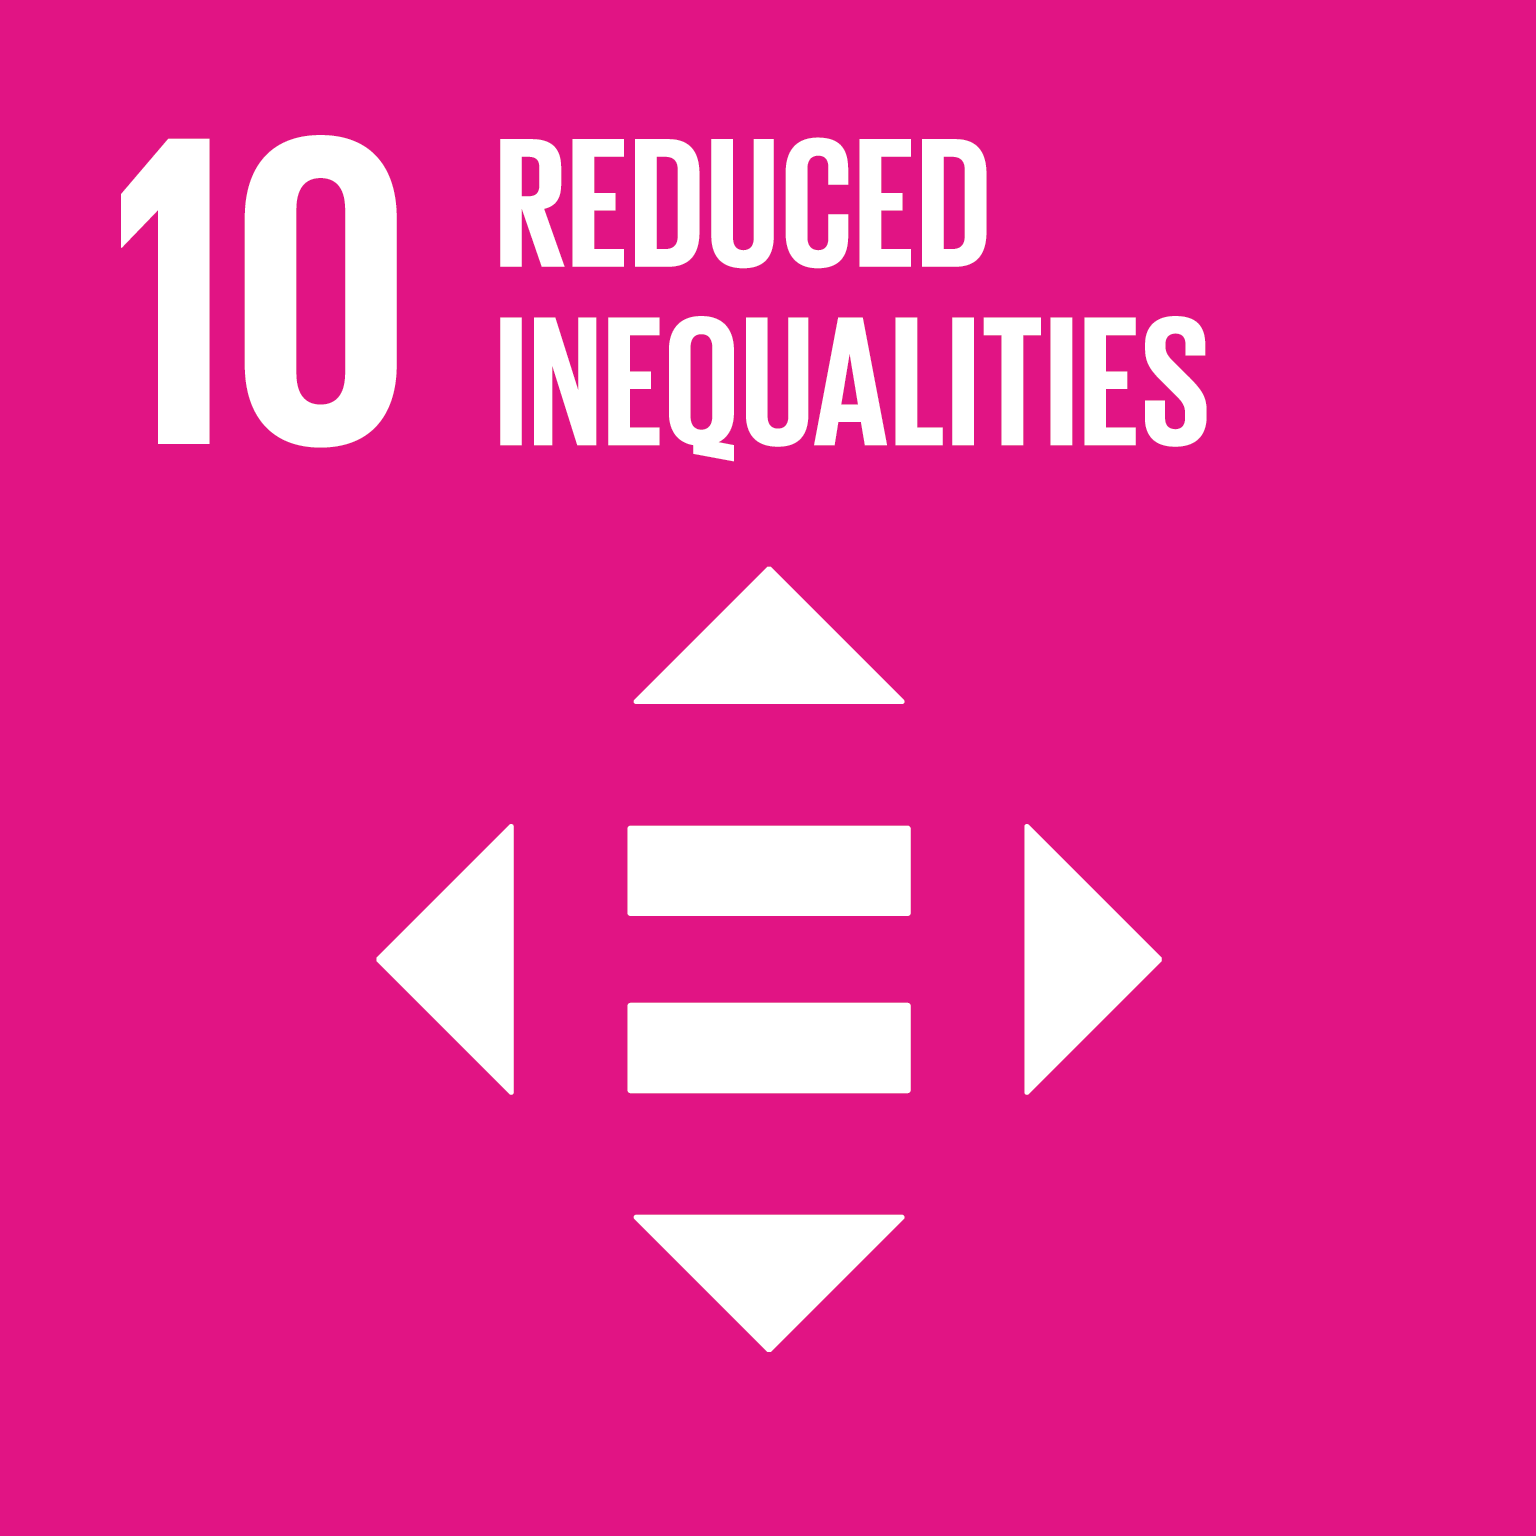 U.N. SDG goal 10, reduced inequalities